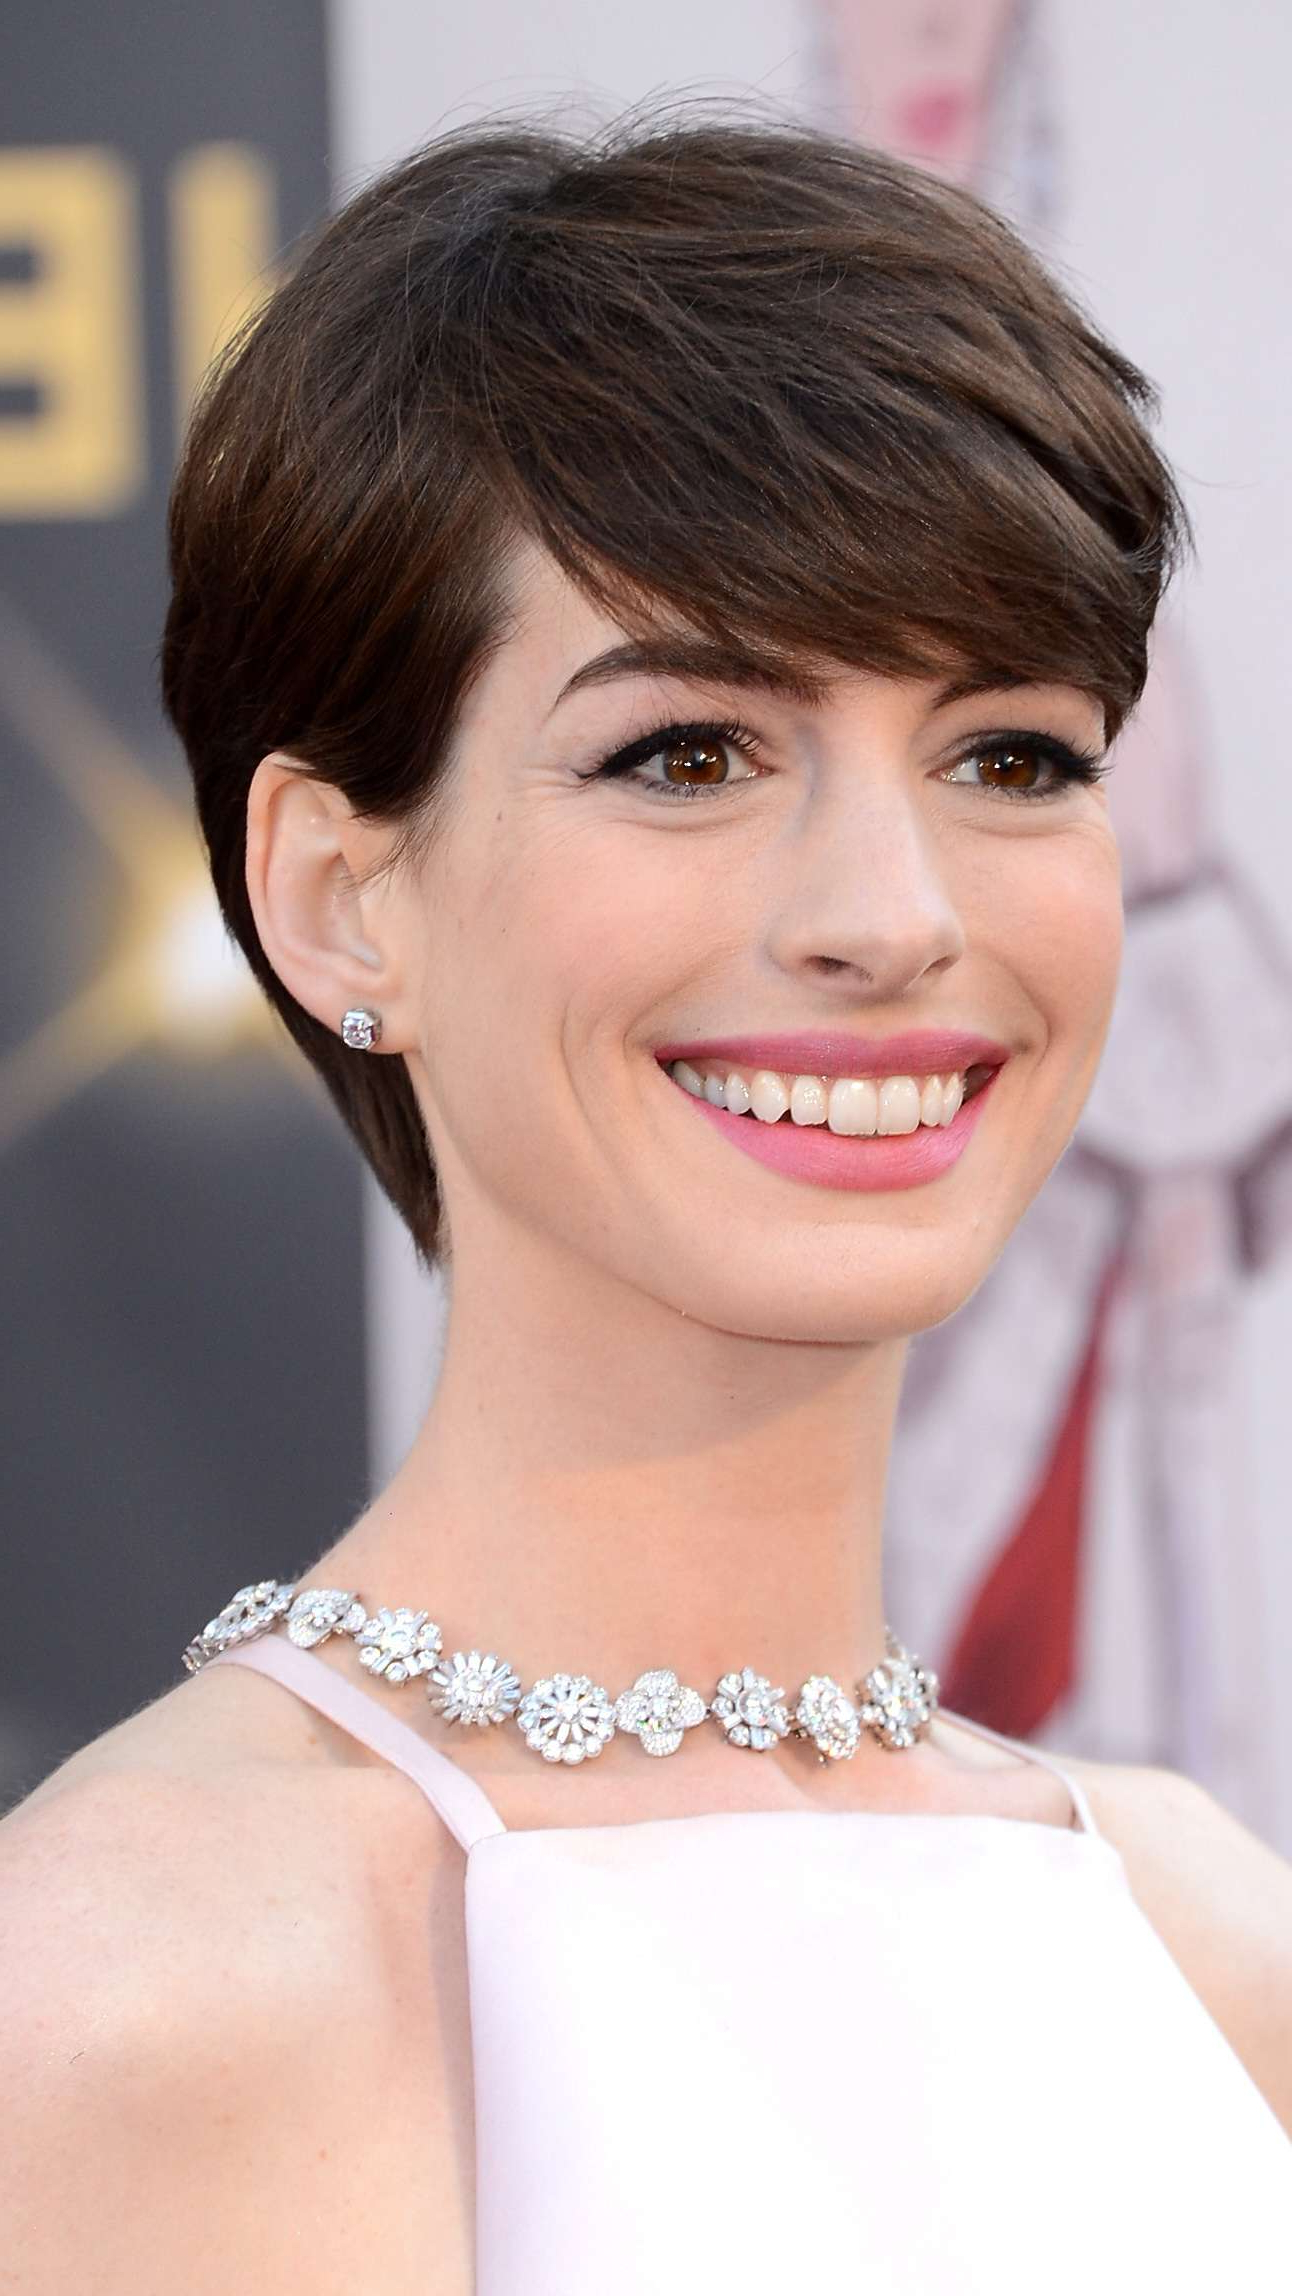 22 Inspiring Short Haircuts For Every Face Shape Within Short Haircuts For Square Jaws (View 5 of 25)